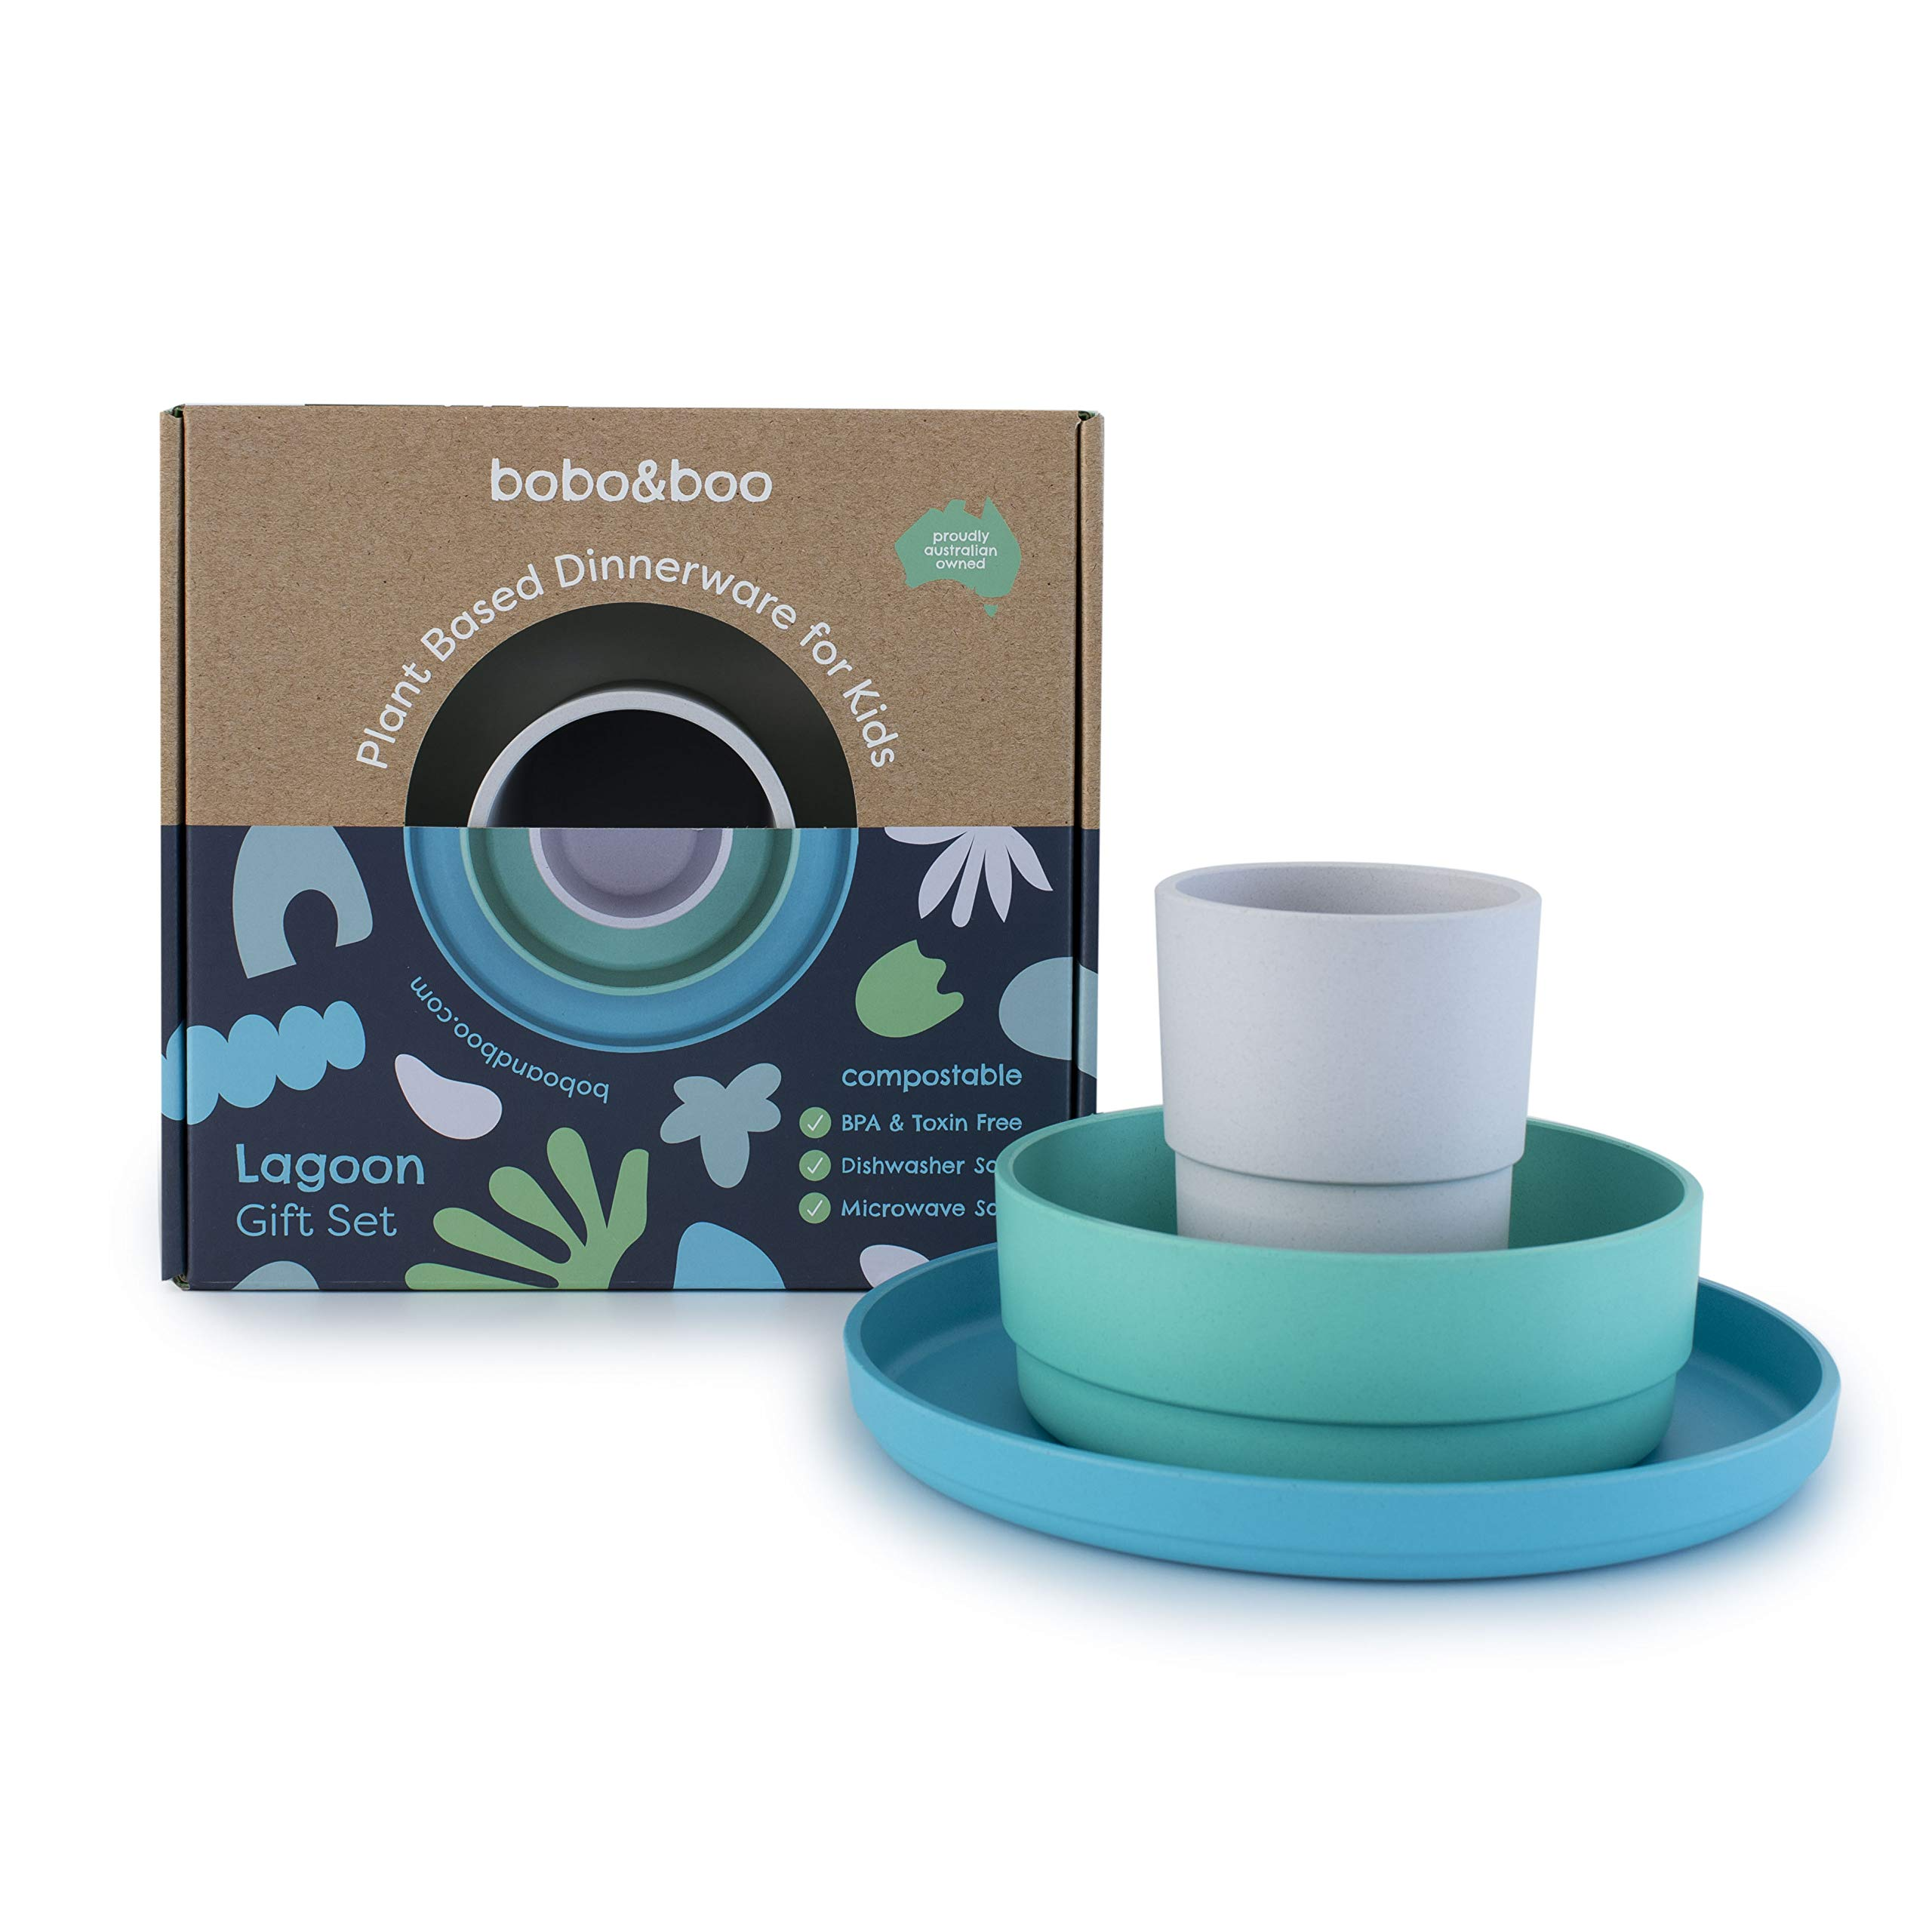 BOBO&BOO Plant-Based Dinnerware Set for Kids   Microwave & Dishwasher Safe   BPA & Melamine Free   Eco Friendly, Biodegradable & Compostable   Reusable Kids 3 Piece Set Cup, Plate and Bowl - LAGOON